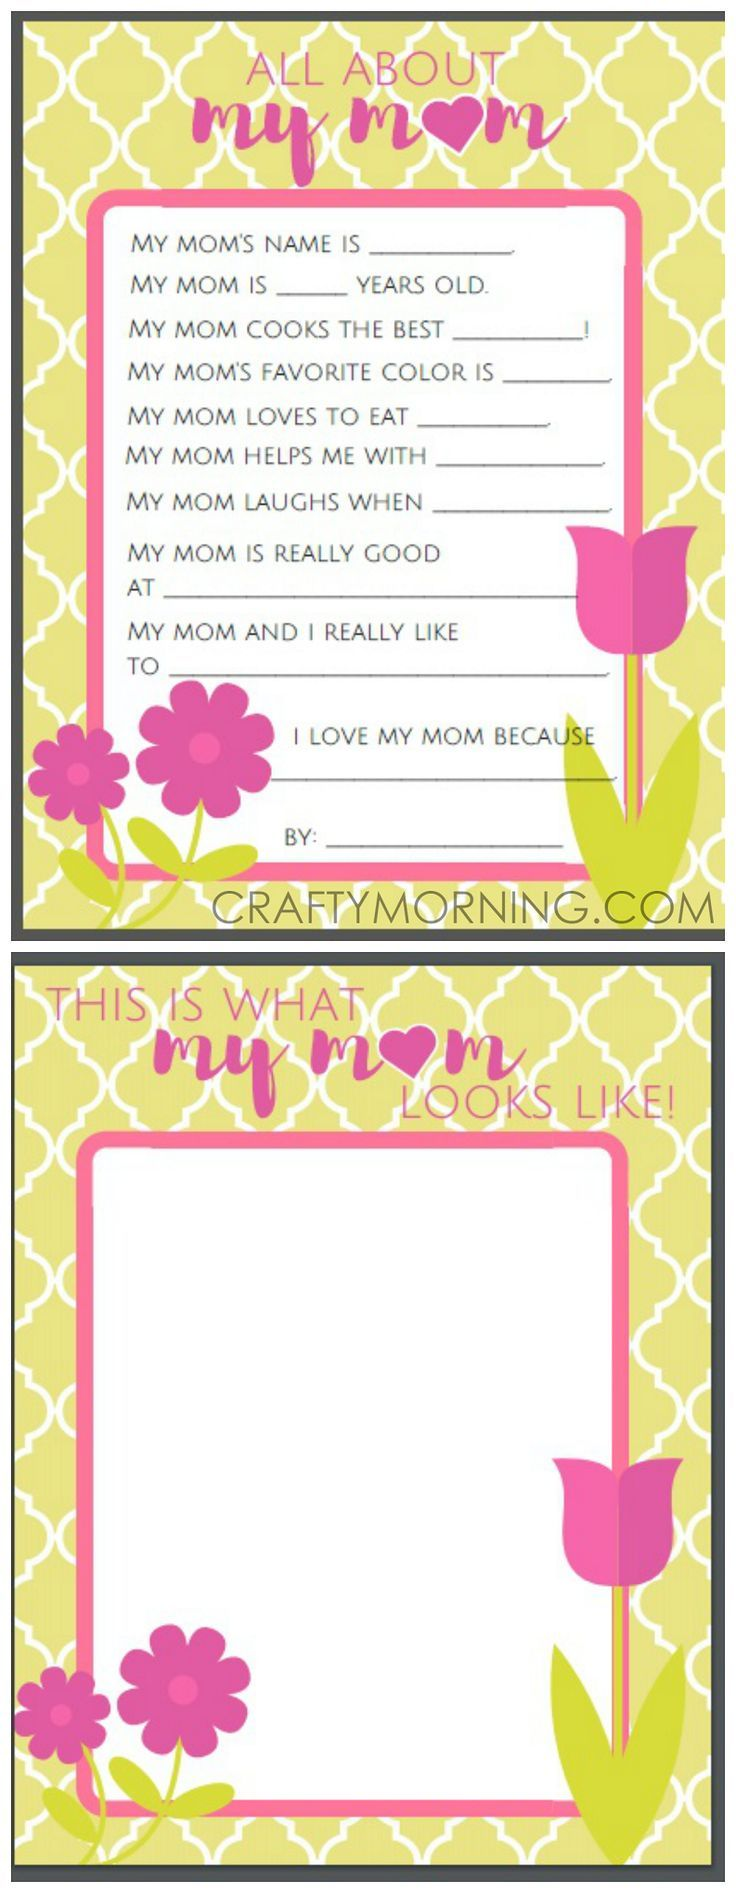 All About Mom Or Grandma Questions Free Mothers Day Printables For Kids To Fill Out